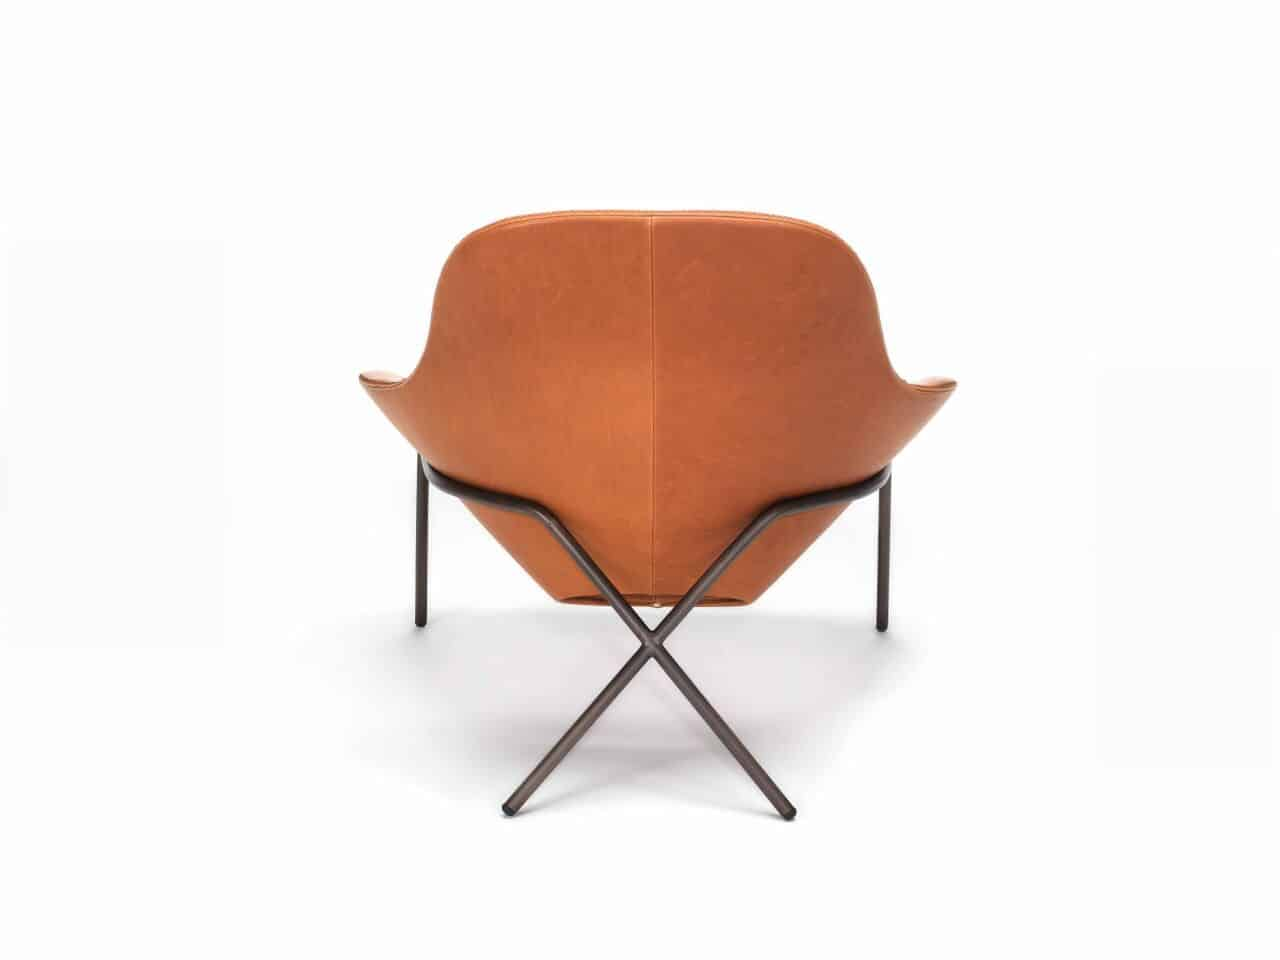 Comfortable Leather Lounge Chair - Cross Leg Chair by Magnus Long